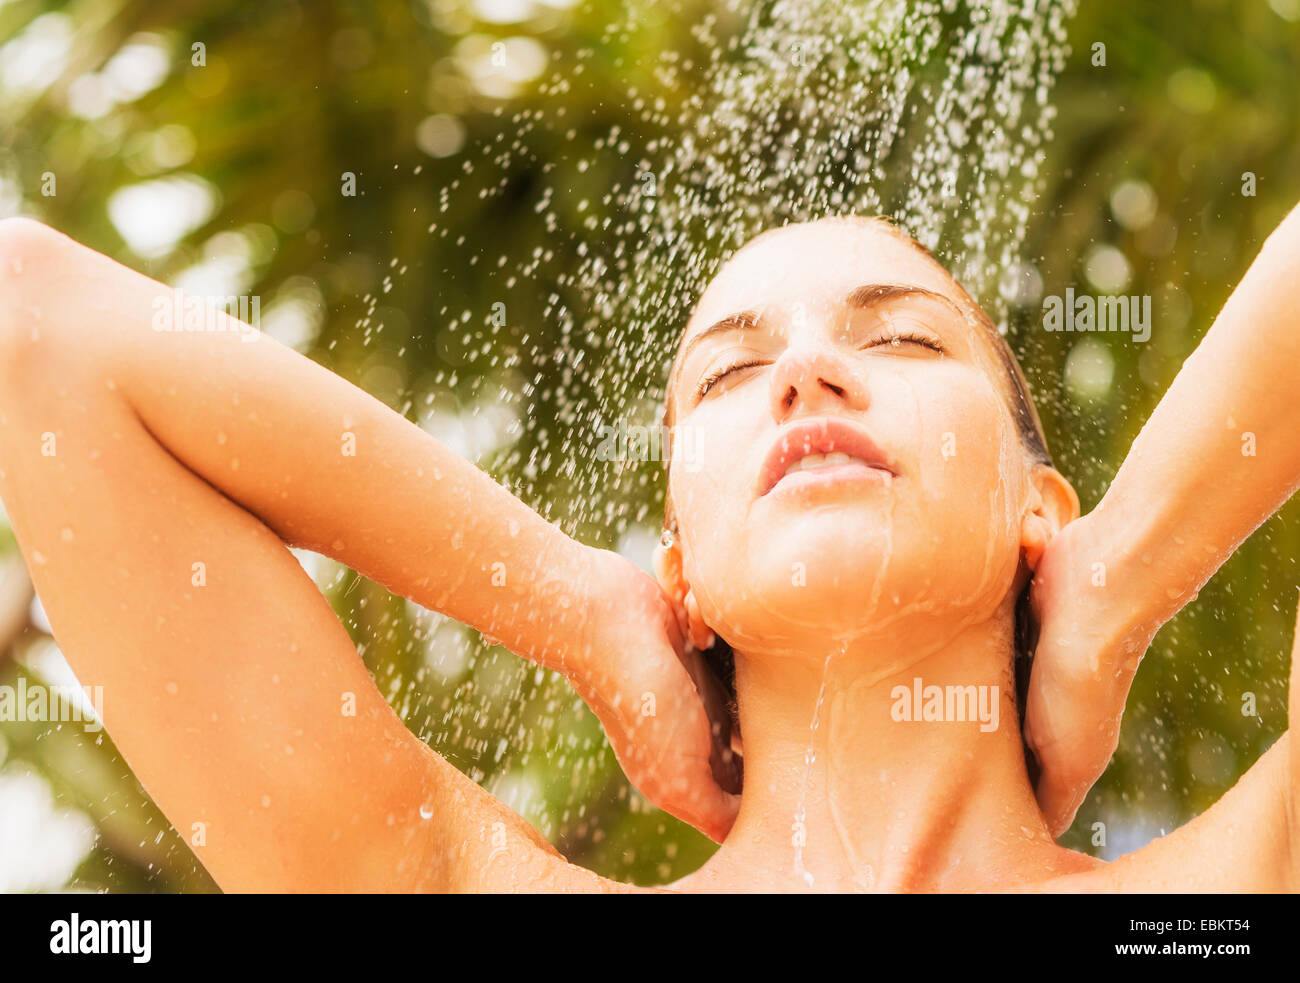 Woman taking shower outdoors - Stock Image